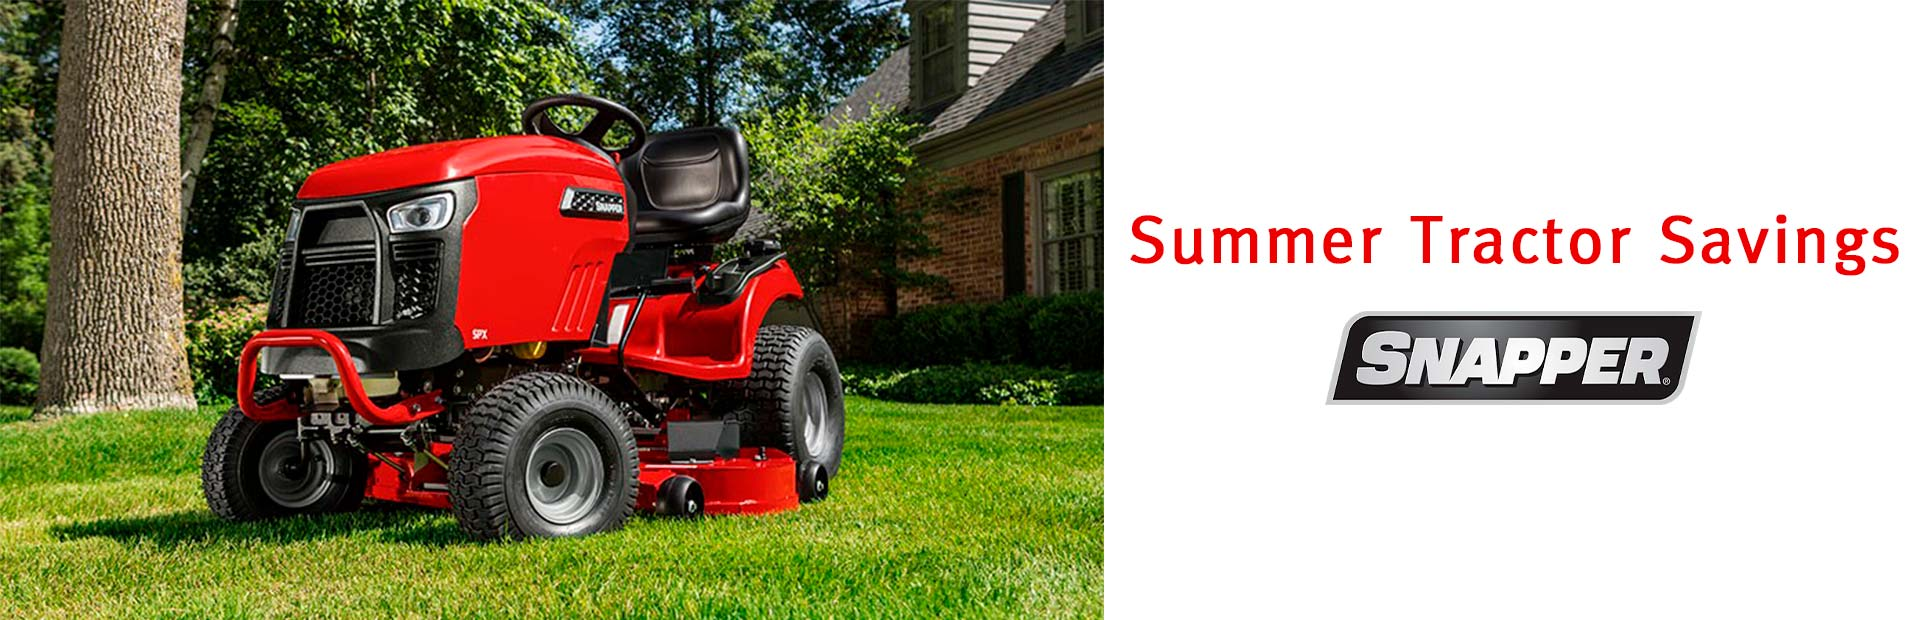 Snapper: Summer Tractor Savings